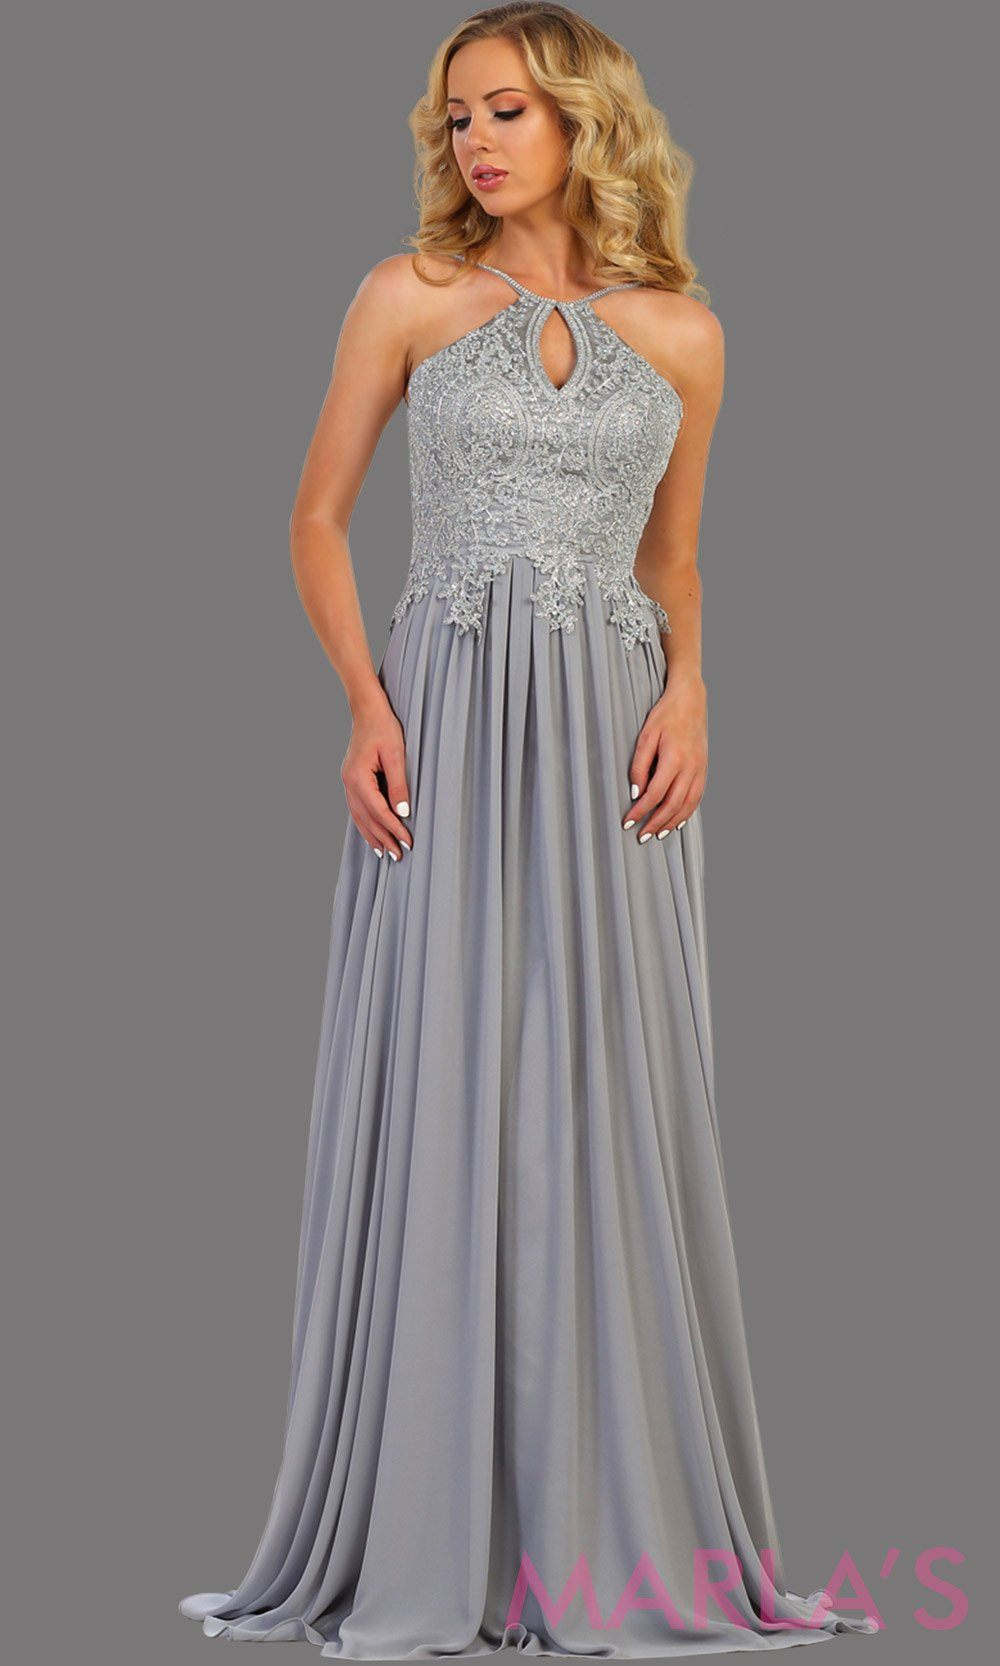 Long light silver flowy dress with silver lace. This high neck gown has a low illusion back. Perfect for prom, gala, formal wedding guest dress, long party gown. Light gray western dress. Available in plus sizes.